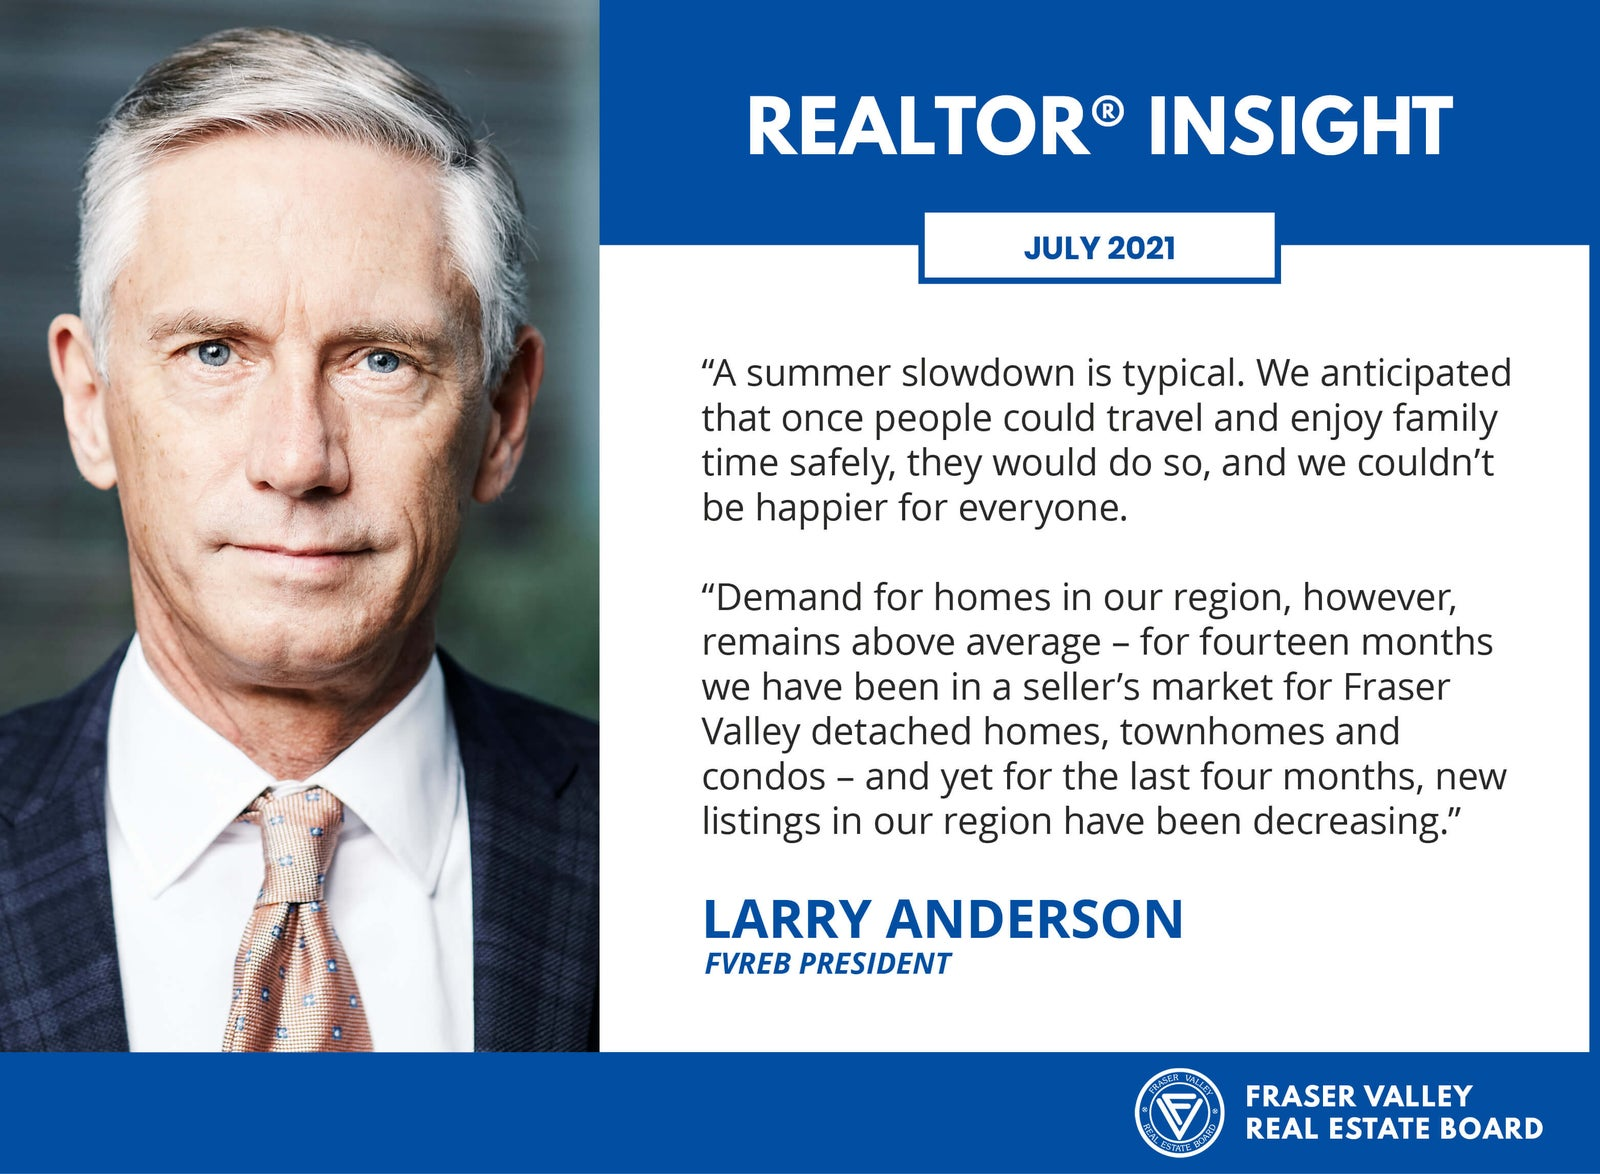 FVREB President - Realtor Insight for July 2021